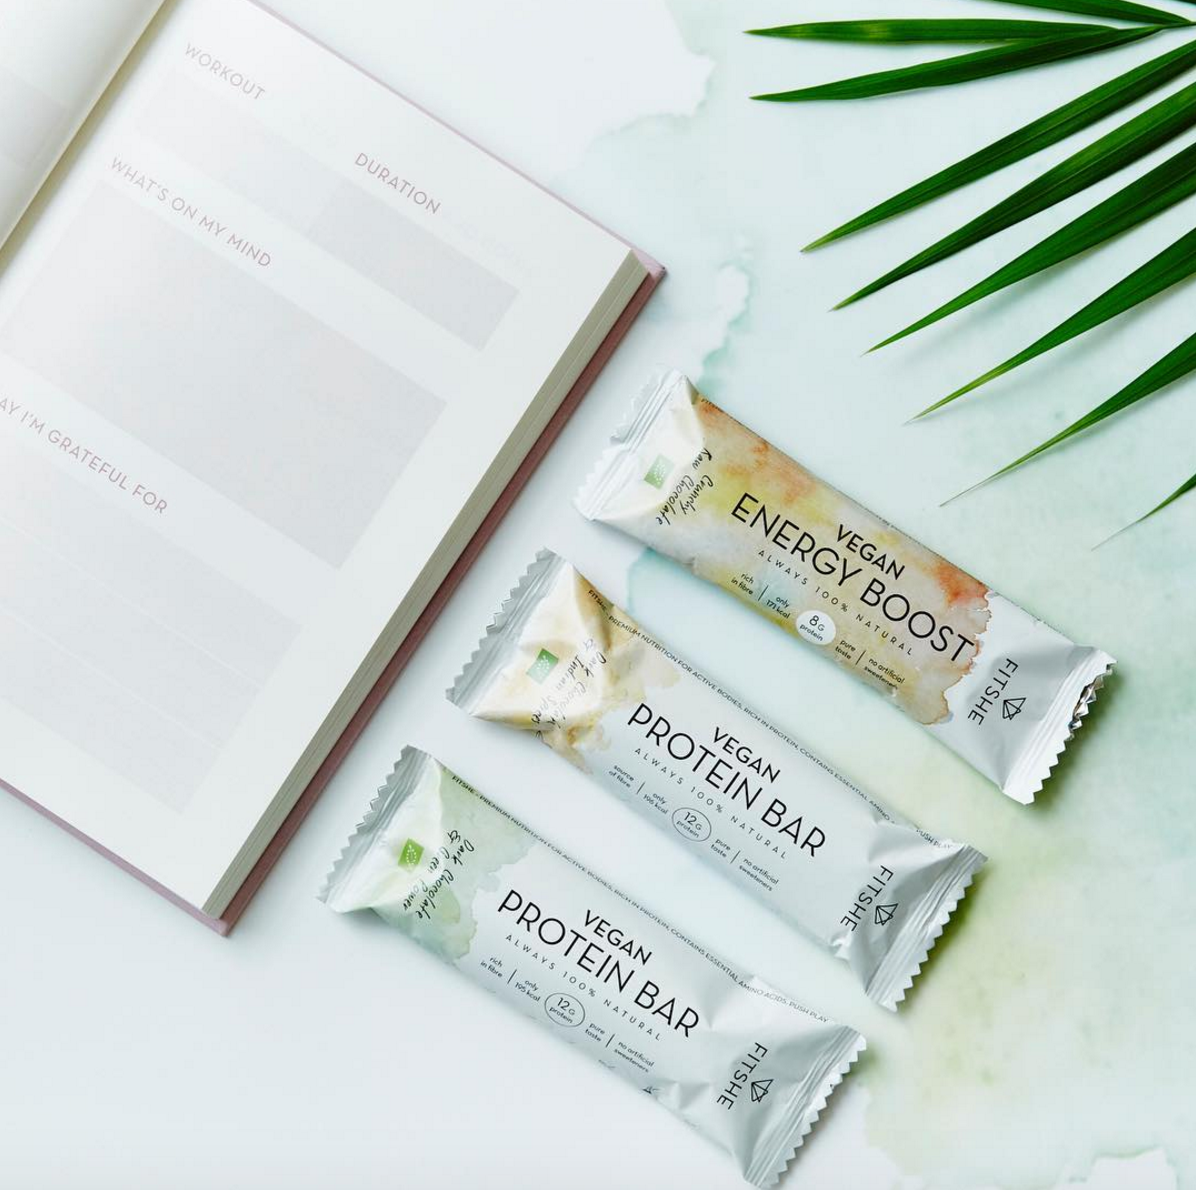 WIN: 2x Fitshe pakket twv. €140,- met (vegan) energy bars